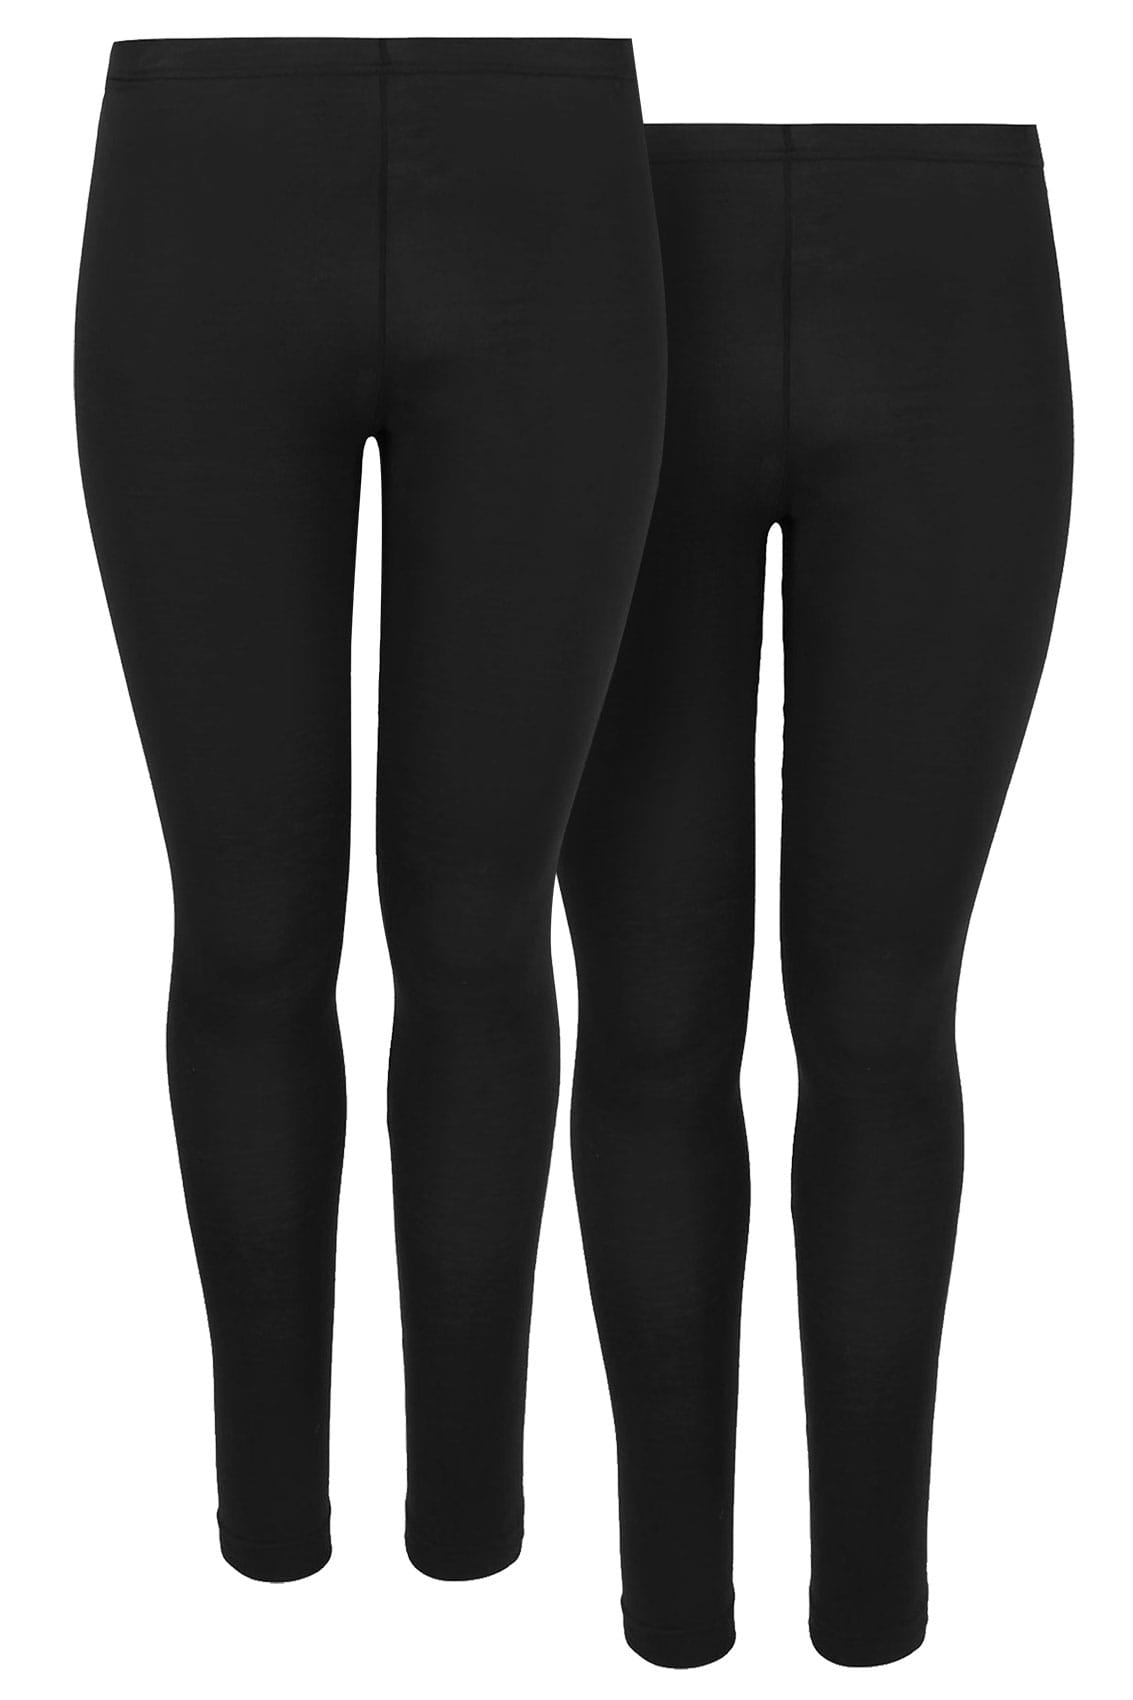 2er pack schwarze viskose elastan leggings in gro en gr en 44 64 - Div background image ...